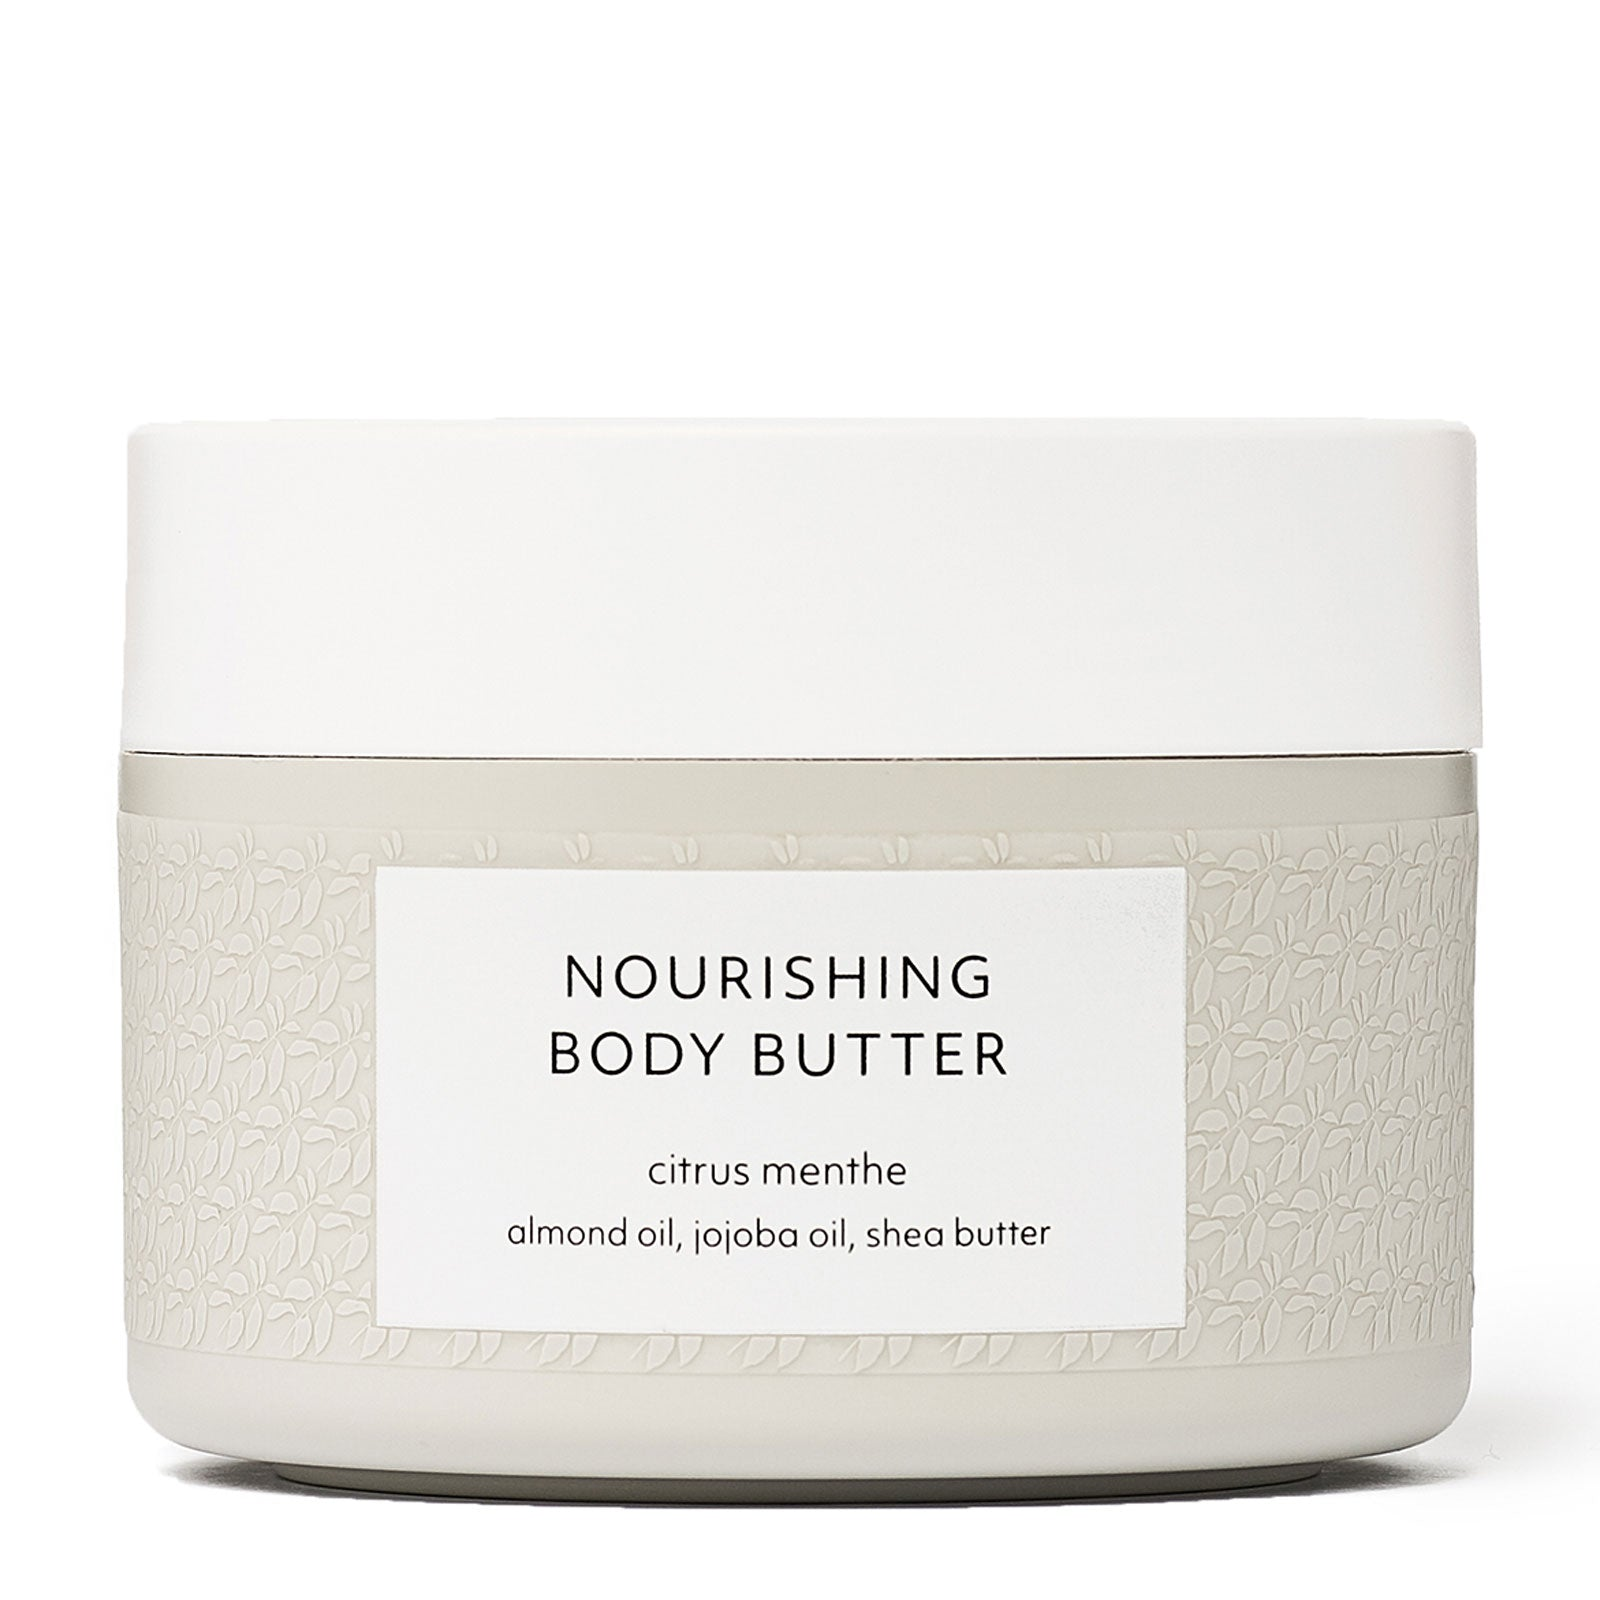 Estelle & Thild Citrus Menthe Nourishing Body Butter 200ml